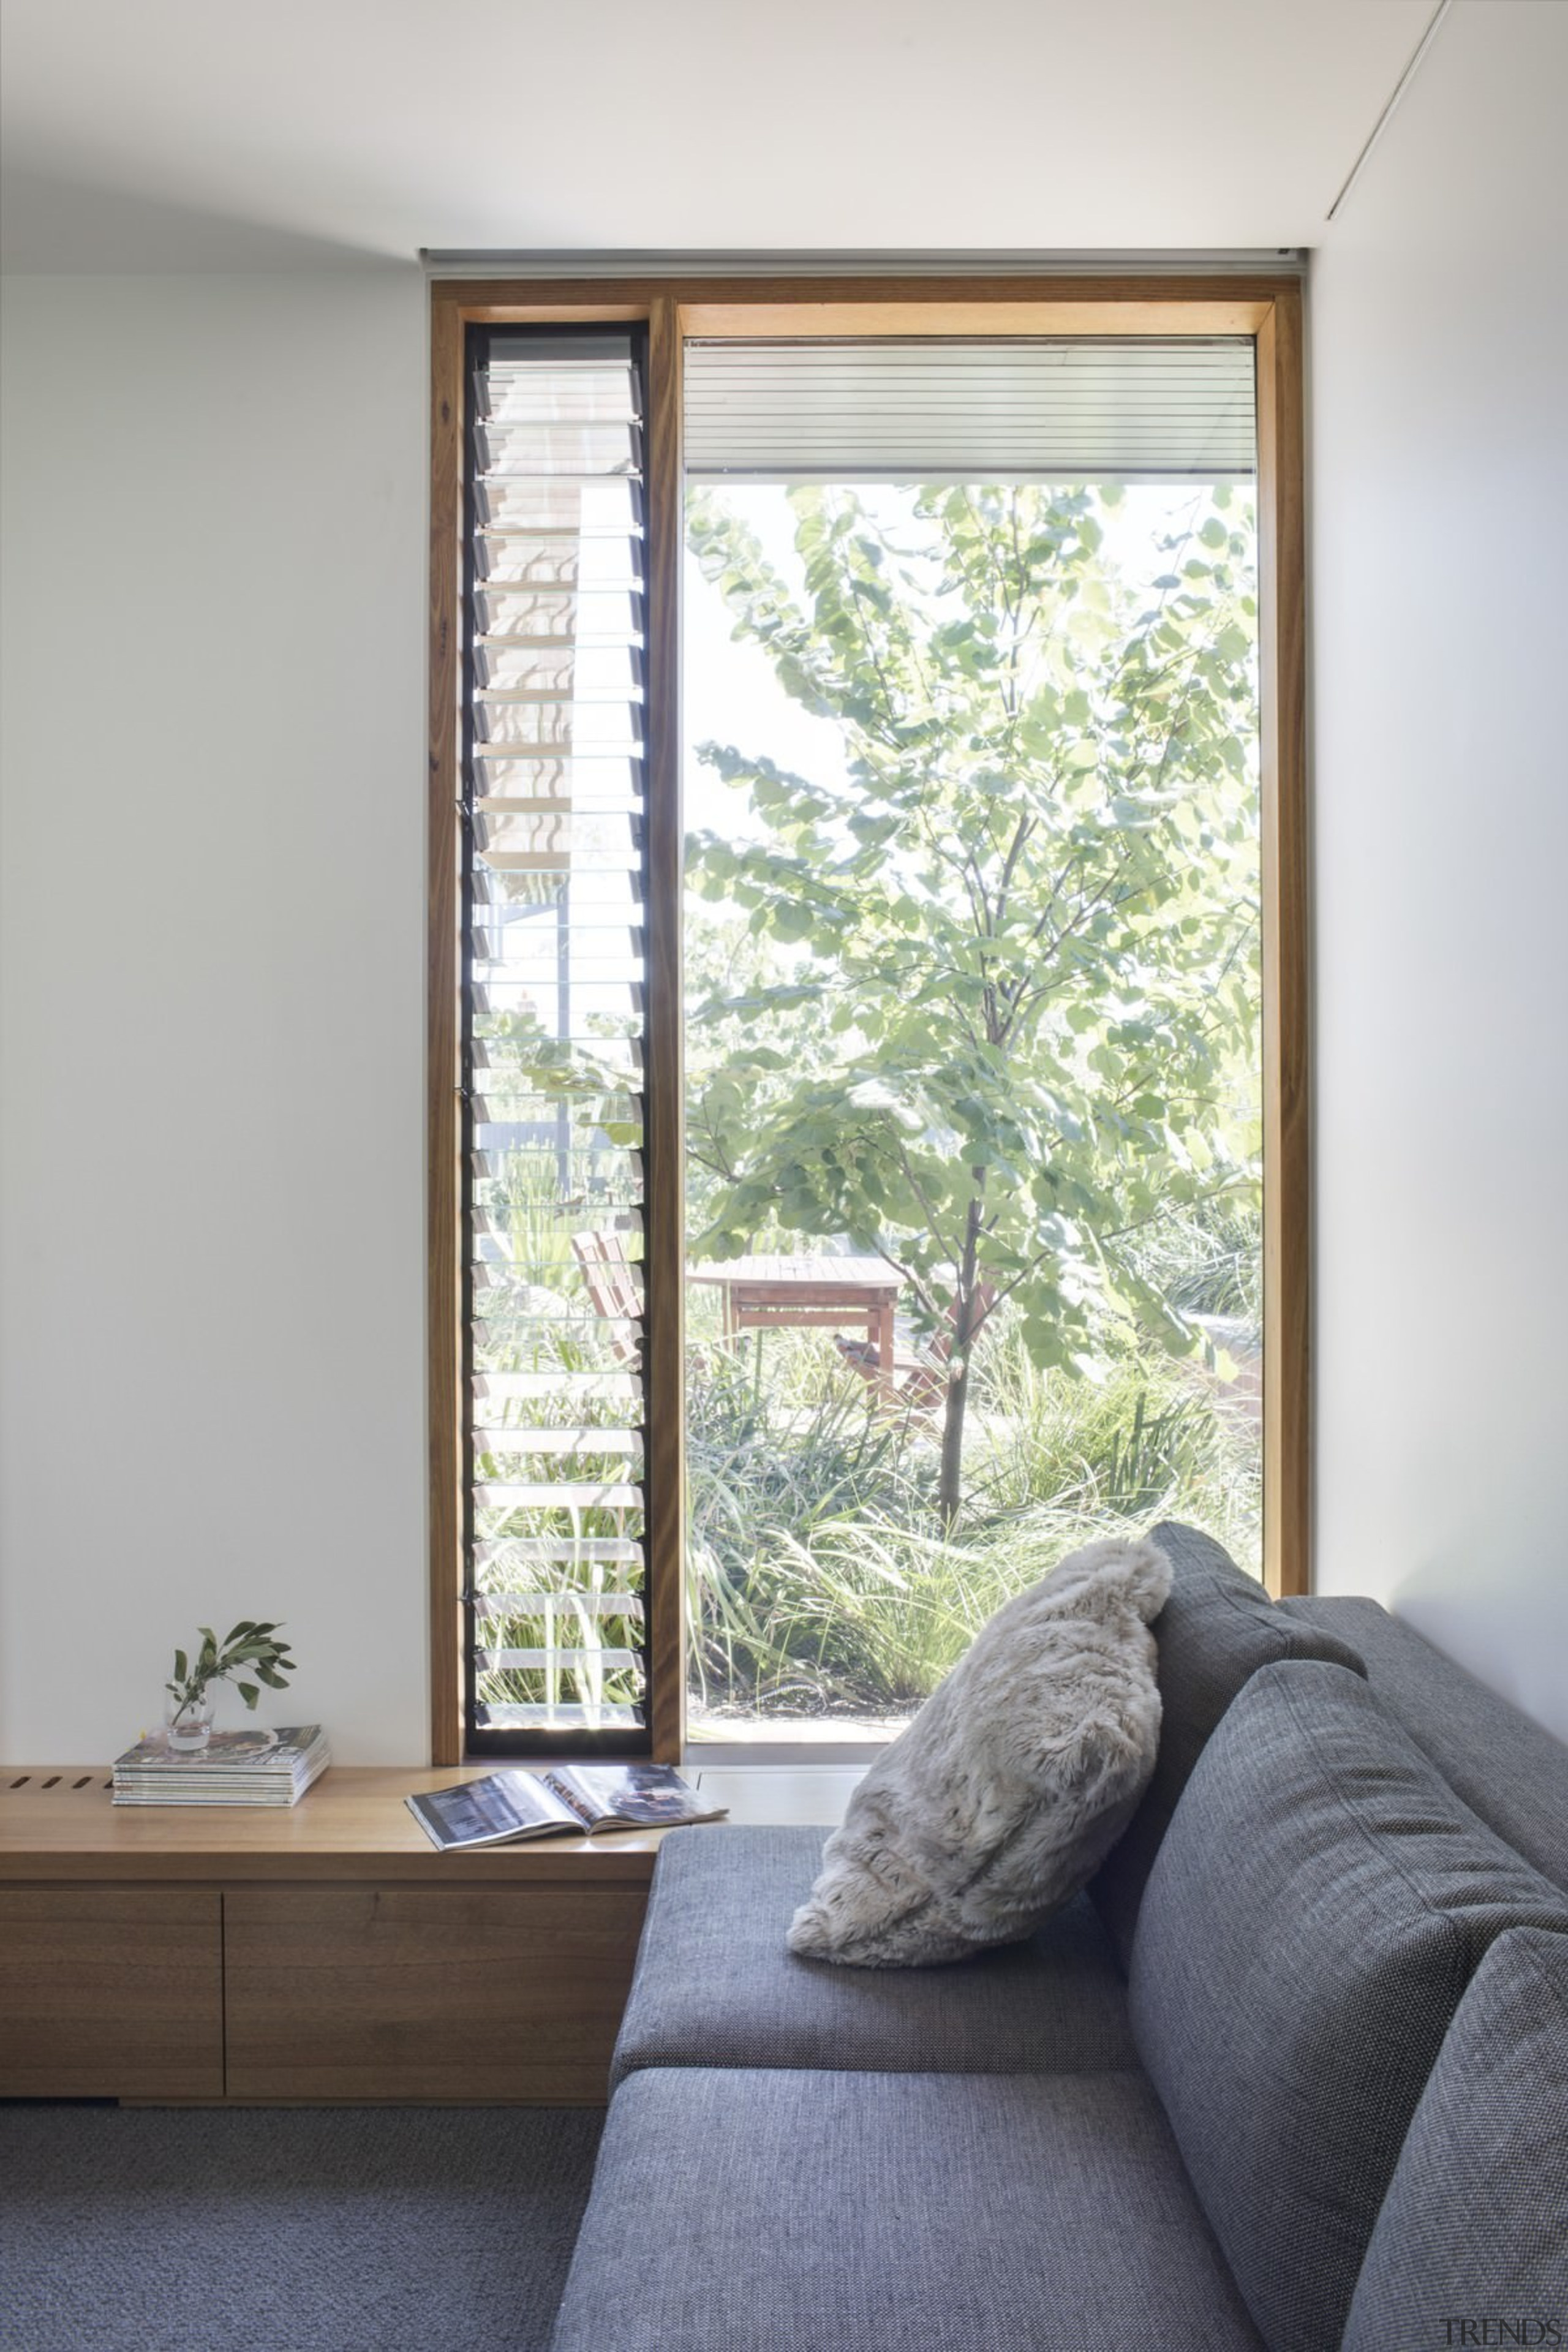 Airflow is no problem in this home - architecture, daylighting, door, home, house, interior design, real estate, room, sash window, window, window covering, window treatment, wood, gray, white